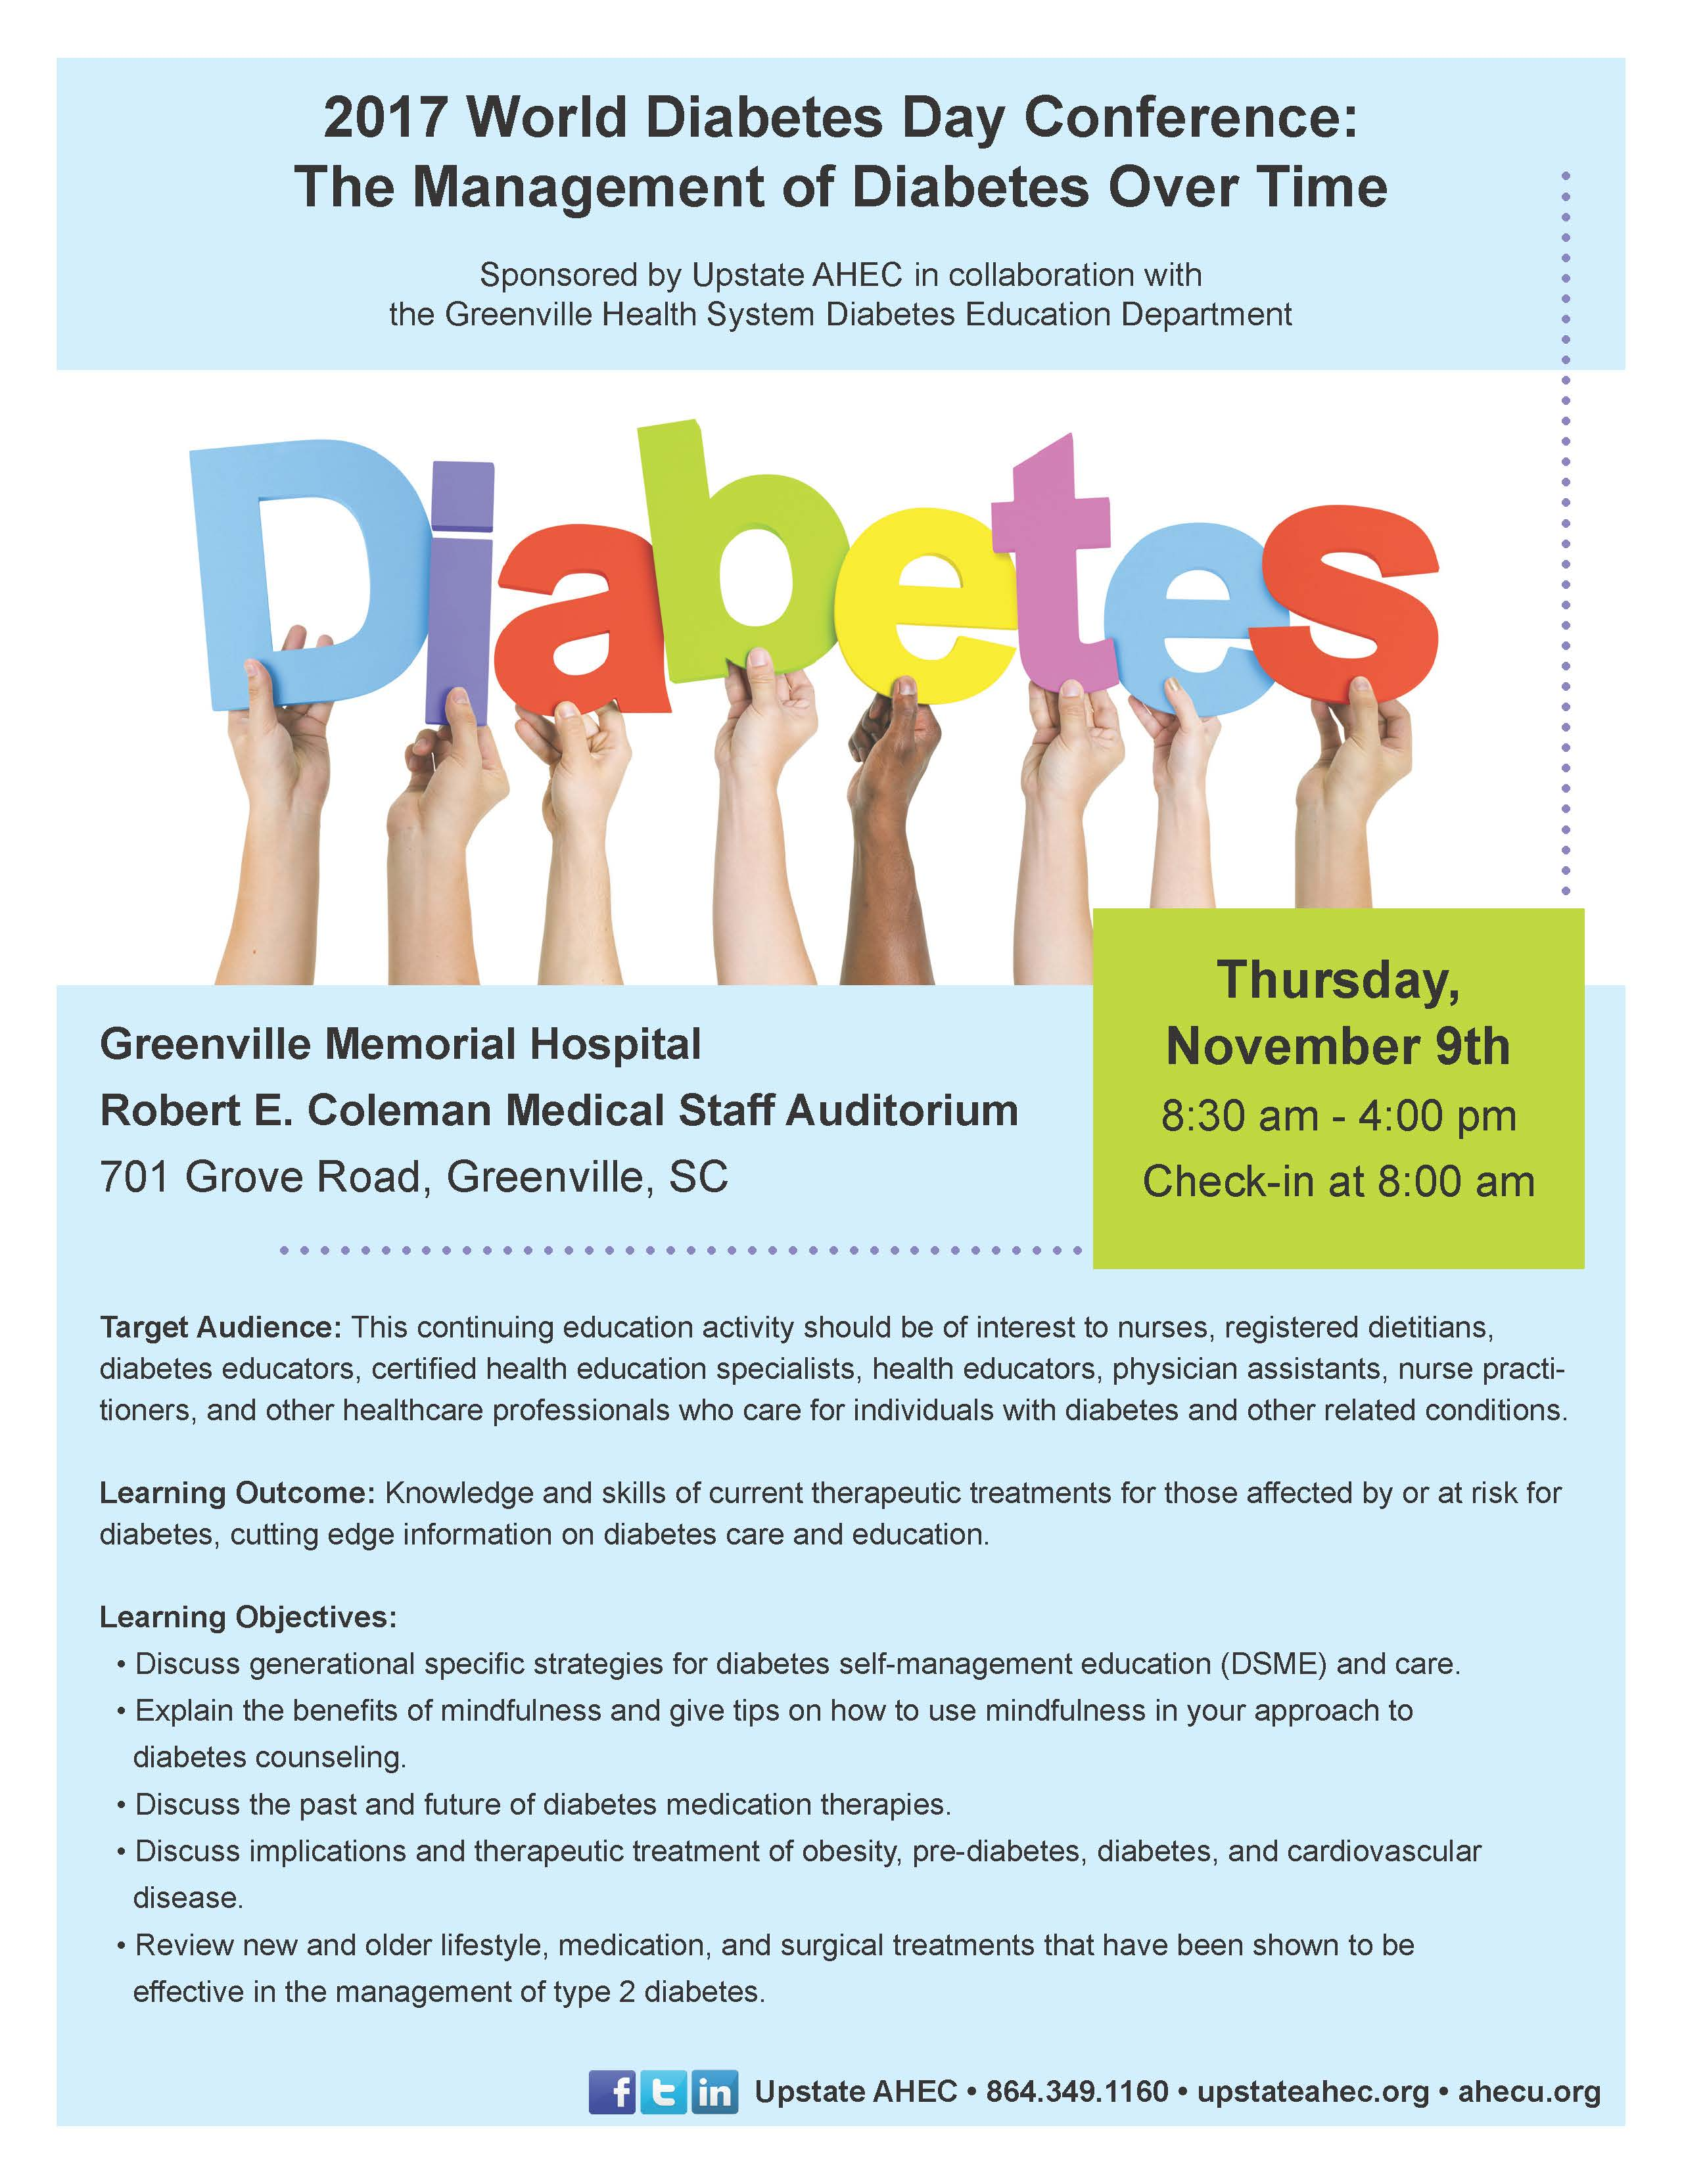 diabetes a contemporary approach managing diabetes Treating type ii diabetes - a practical approach acute complications of diabetes let's briefly go over a practical approach to treating type ii diabetes.